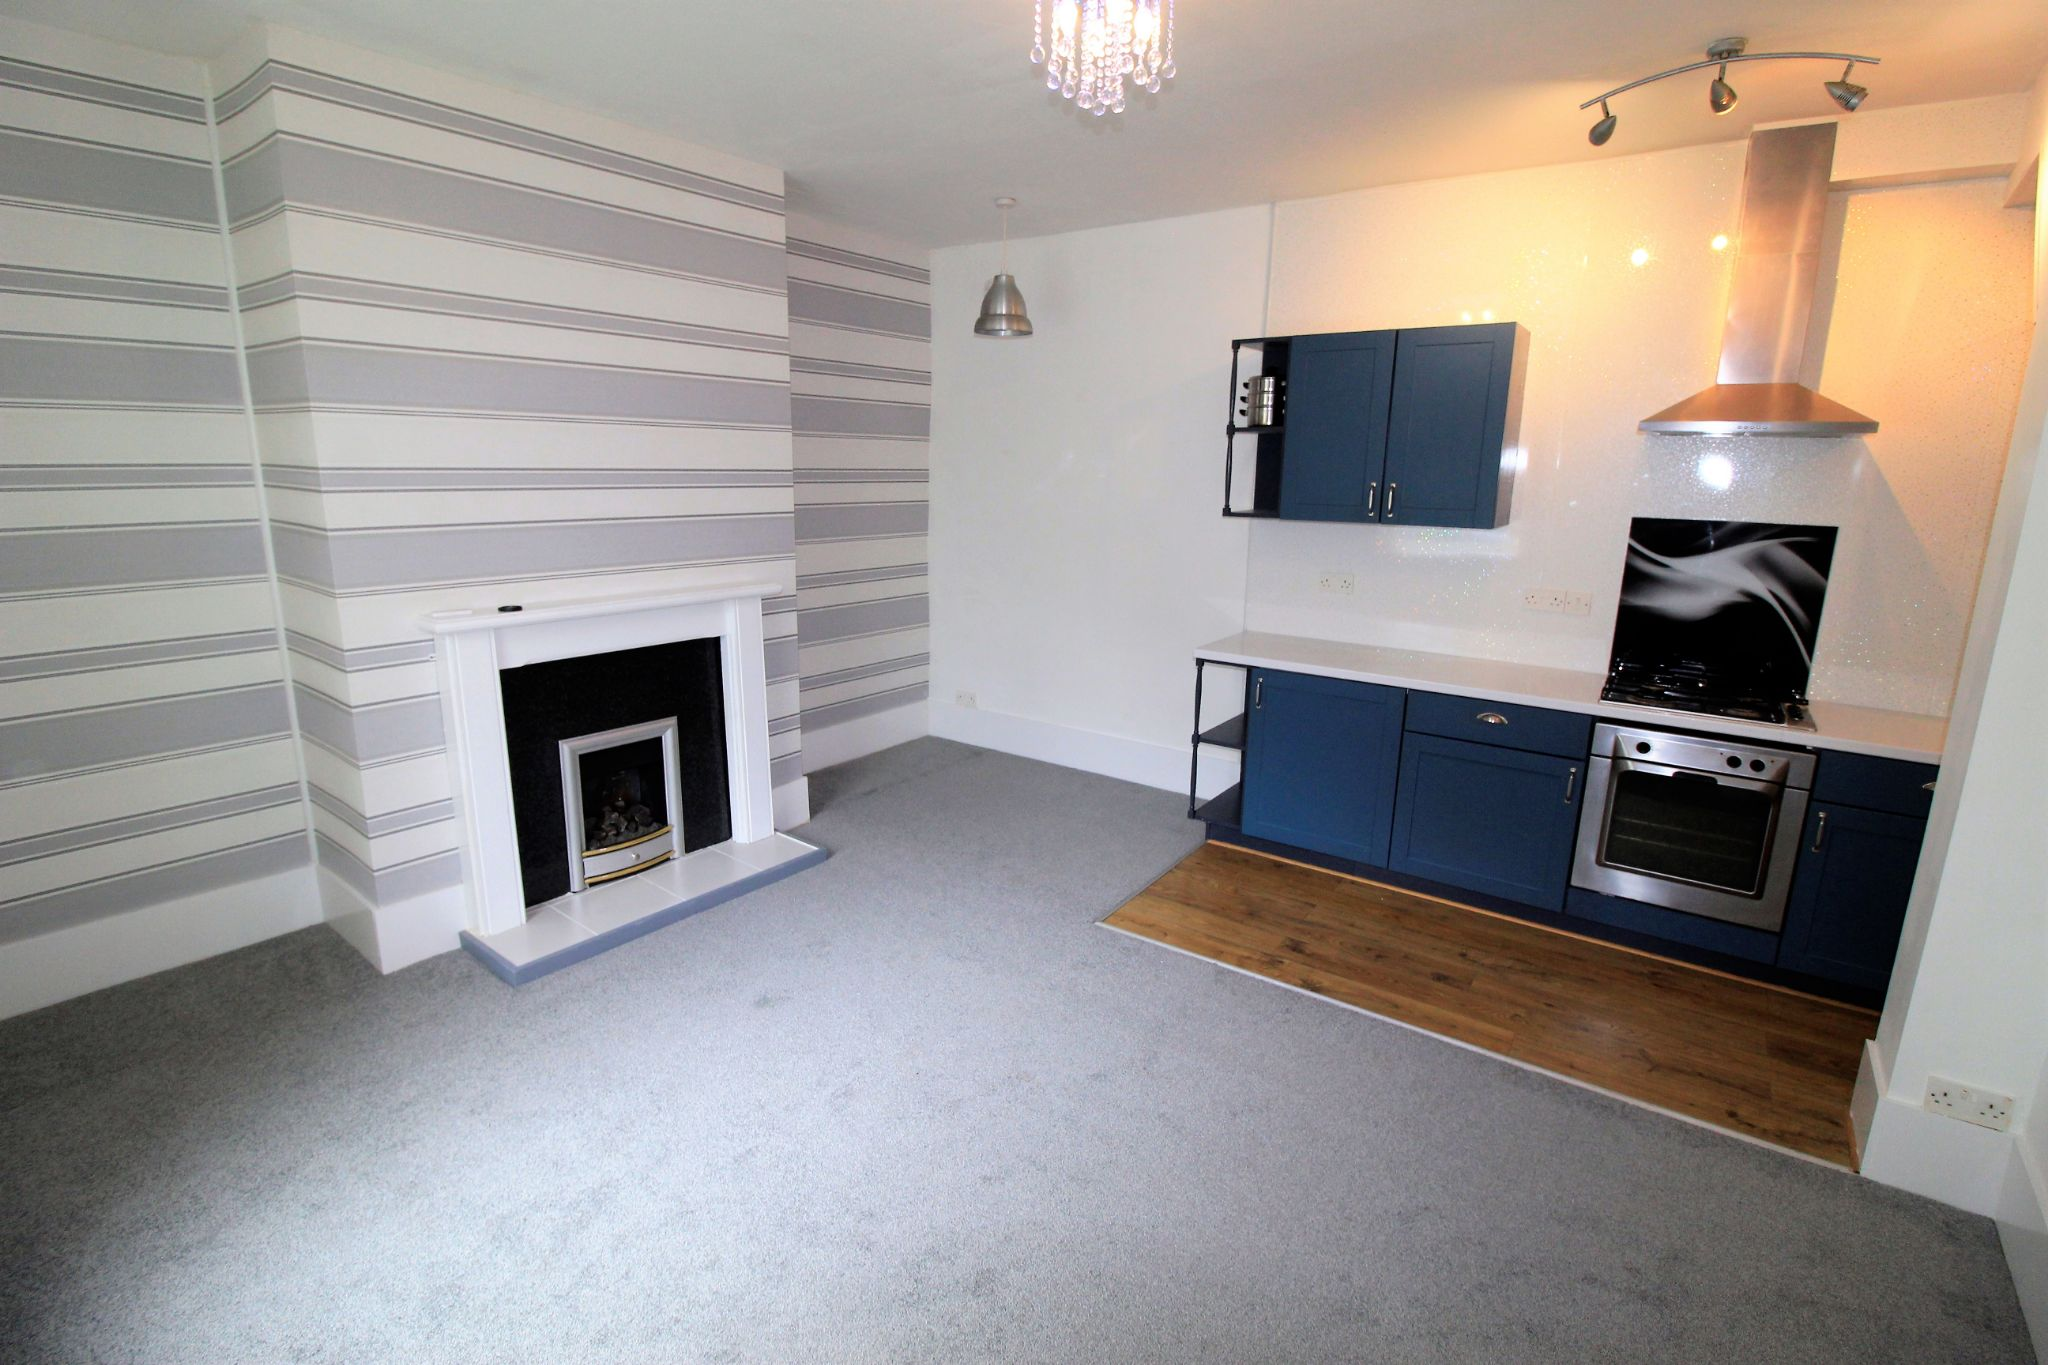 2 bedroom mid terraced house For Sale in Huddersfield - Lounge / kitchen area